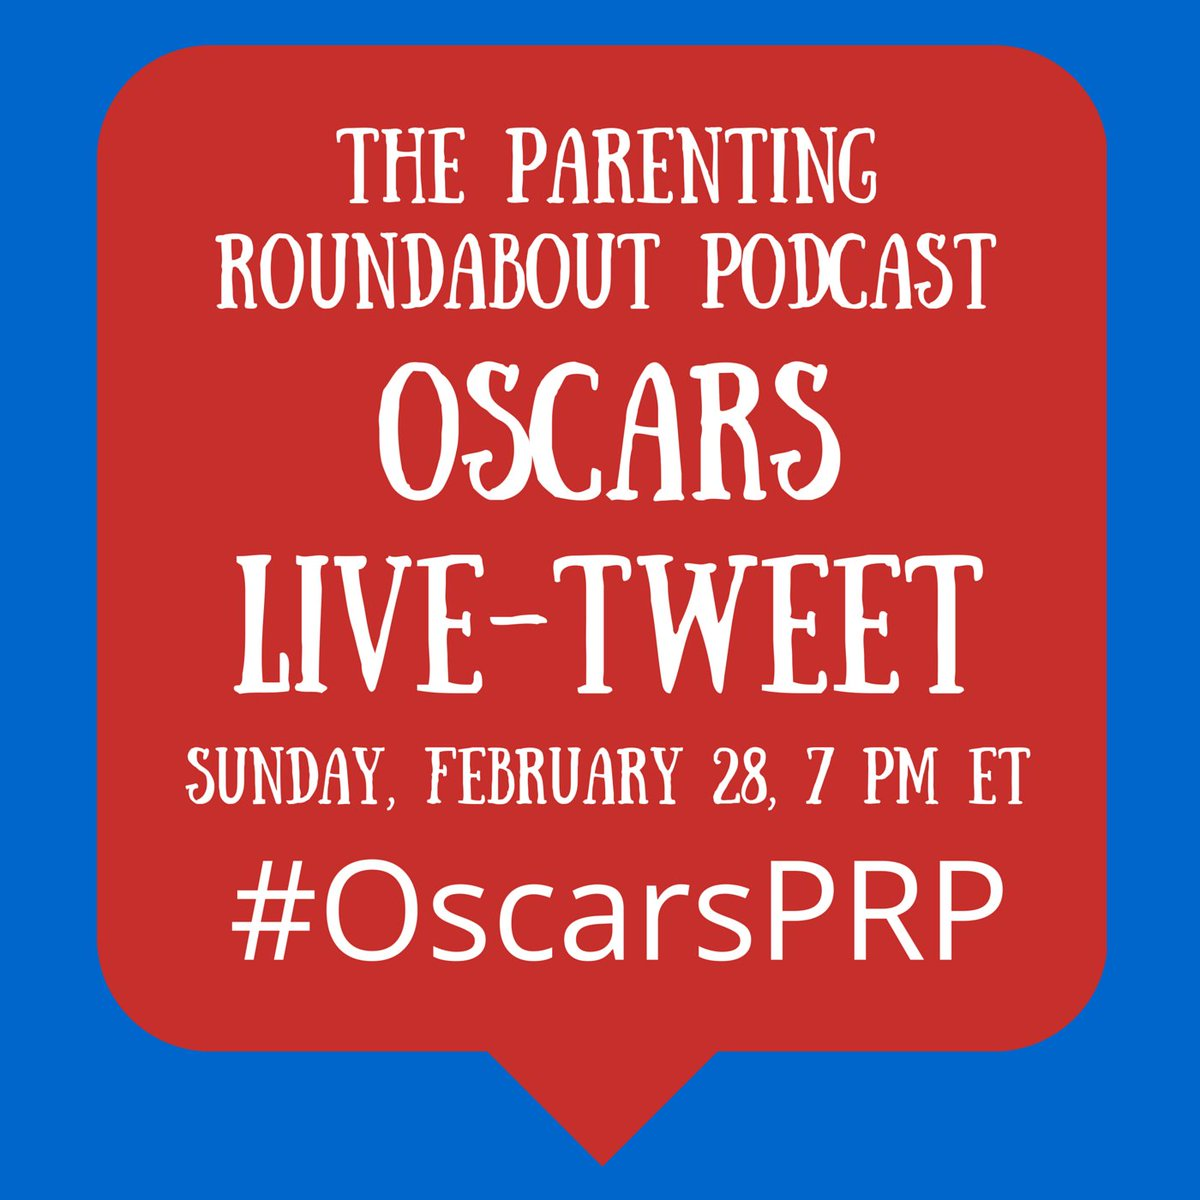 We'll be live-tweeting the #Oscars tonight! Follow #OscarsPRP to join us. https://t.co/E7DjlrHb7J